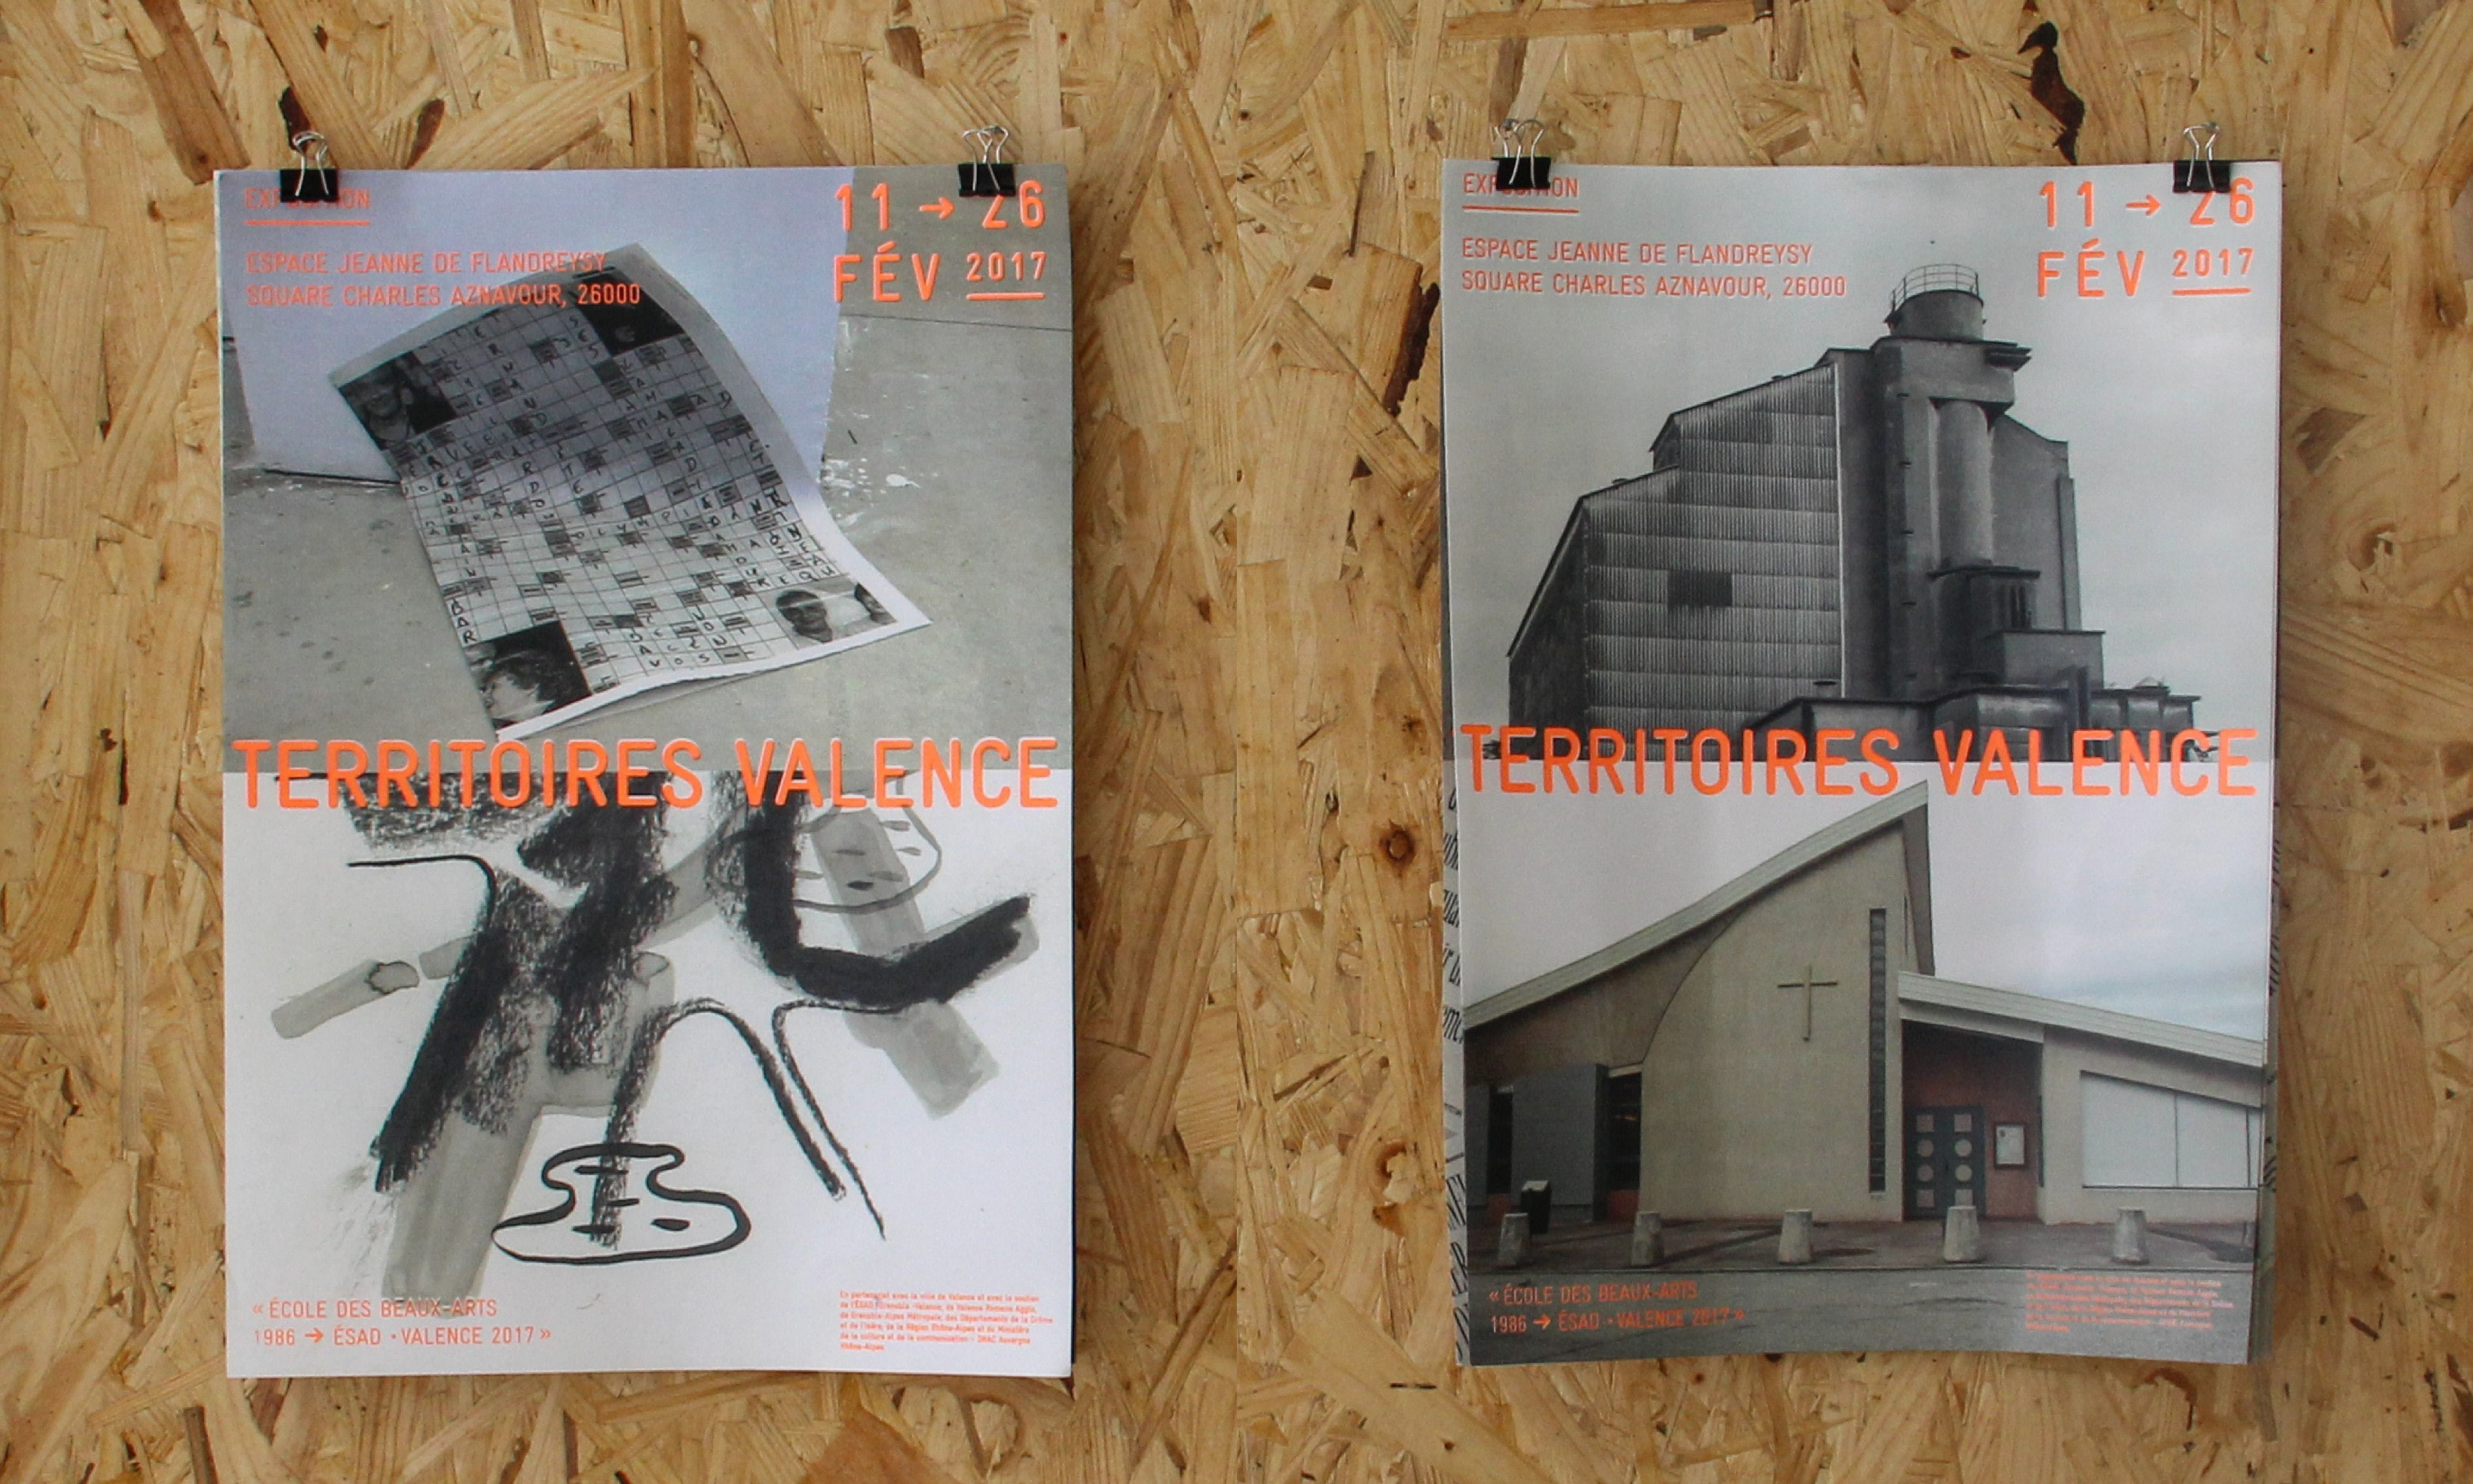 Two versions of the poster for the exhibition